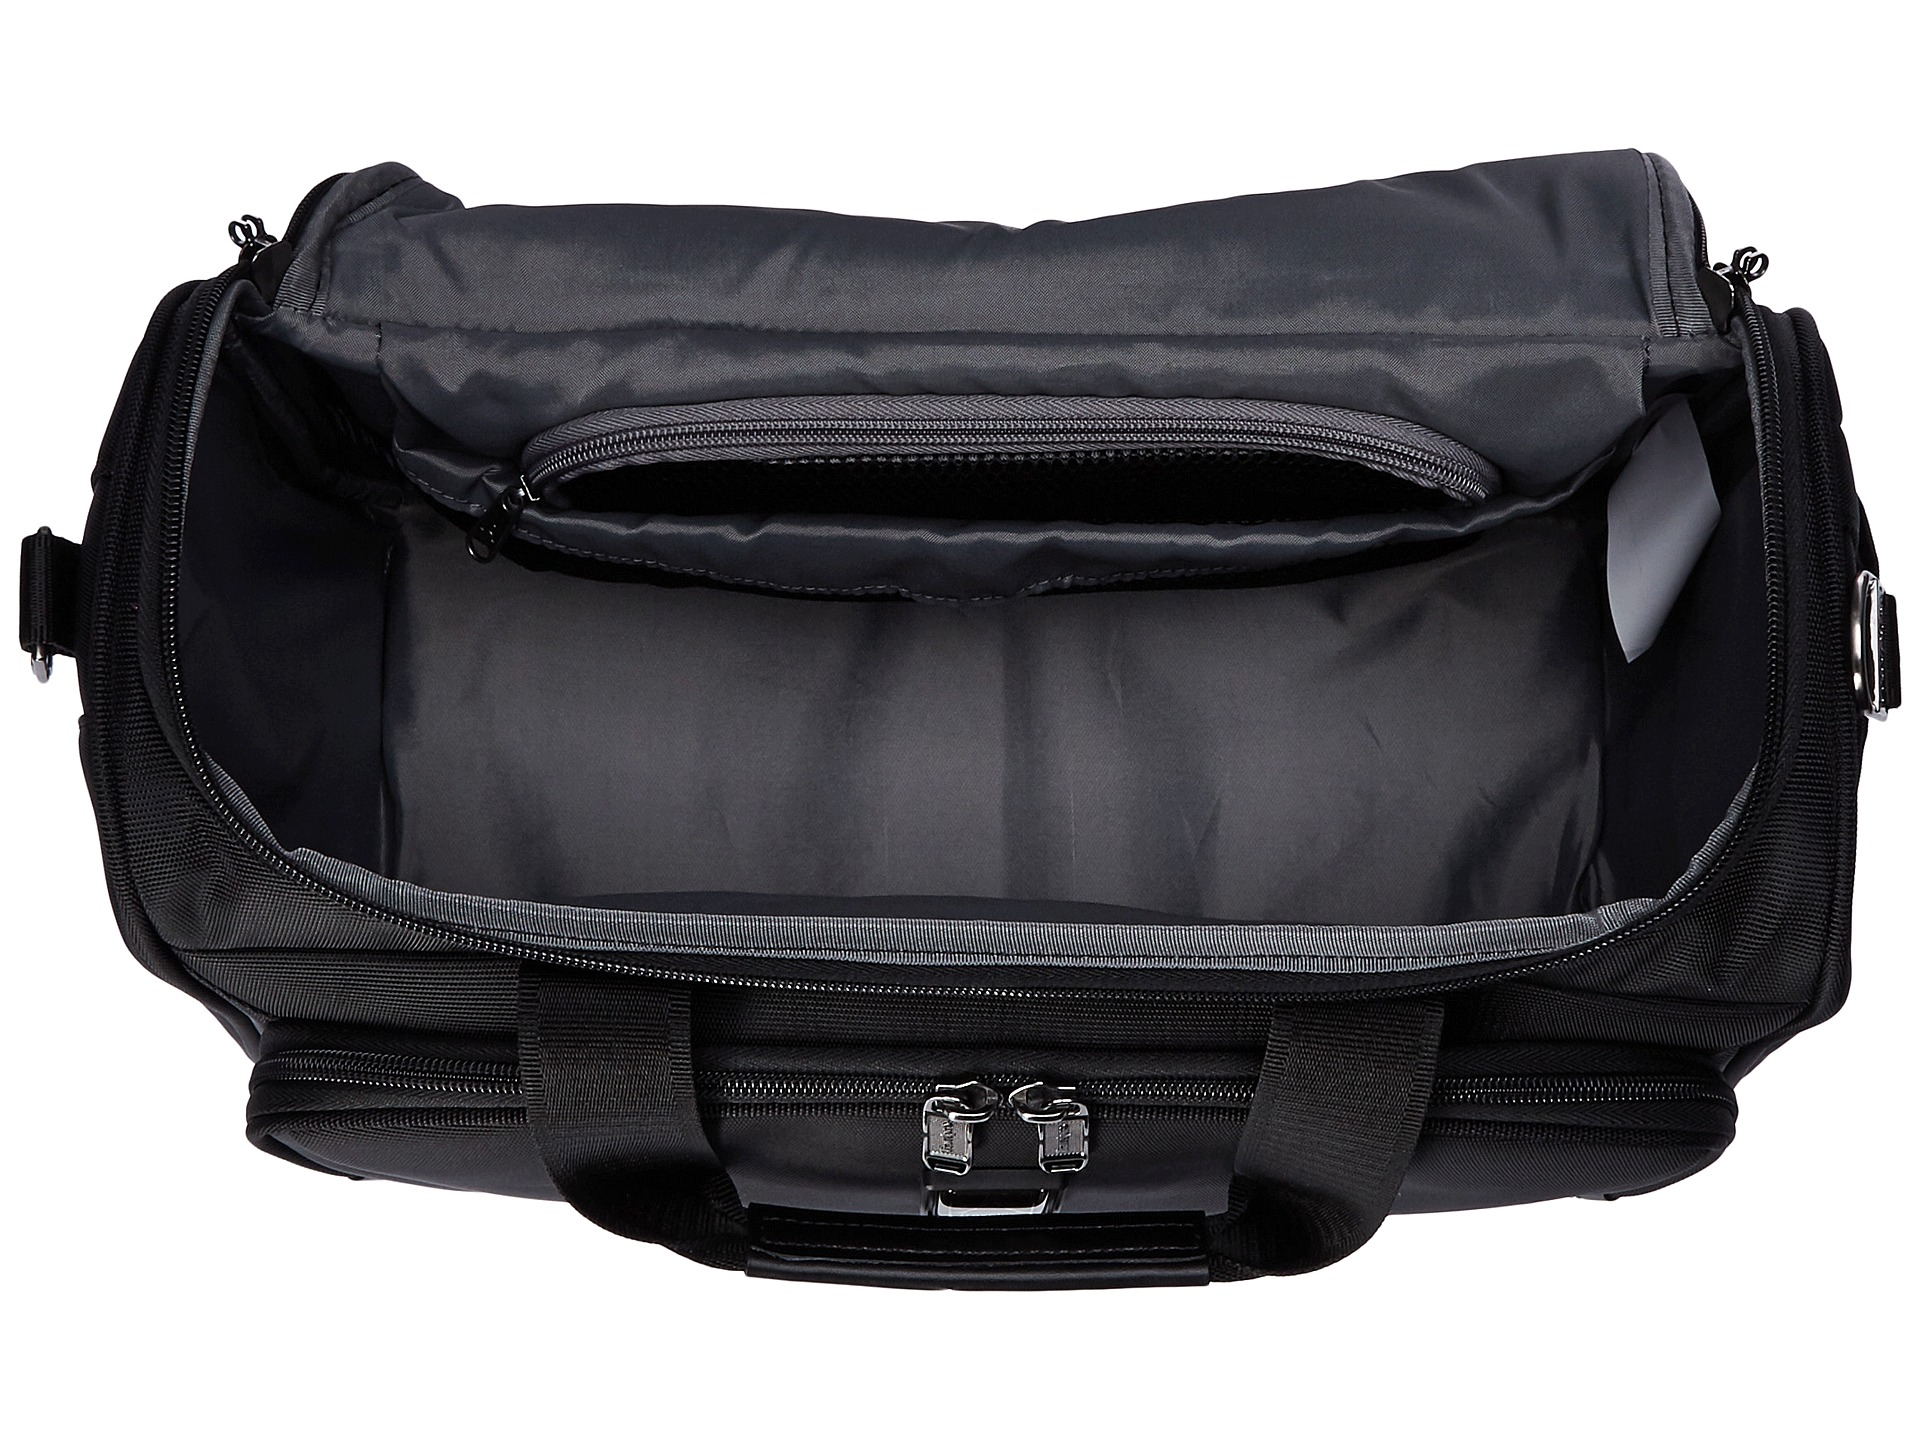 Travelpro Crew 11 - Deluxe Tote at Zappos.com